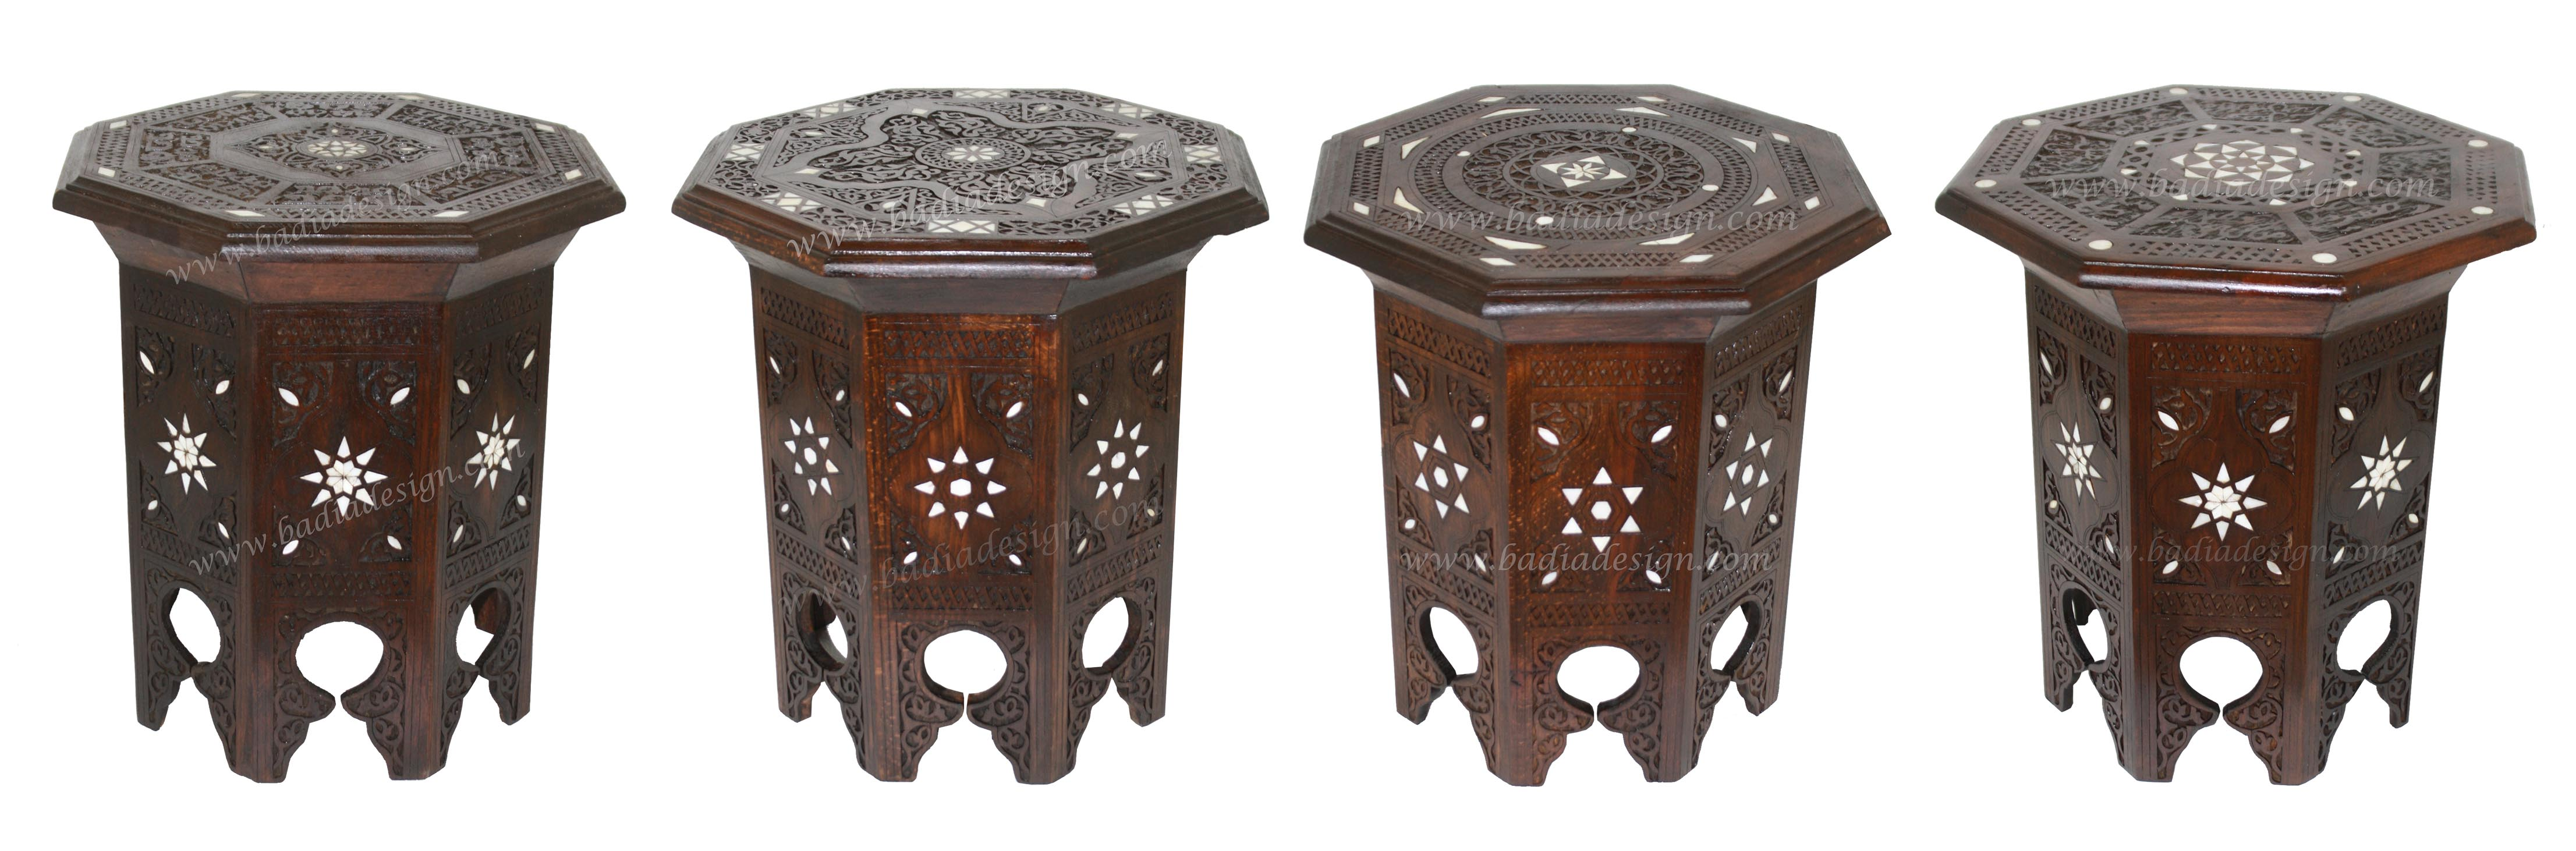 moroccan-bone-inlaid-side-table-mop-st073.jpg